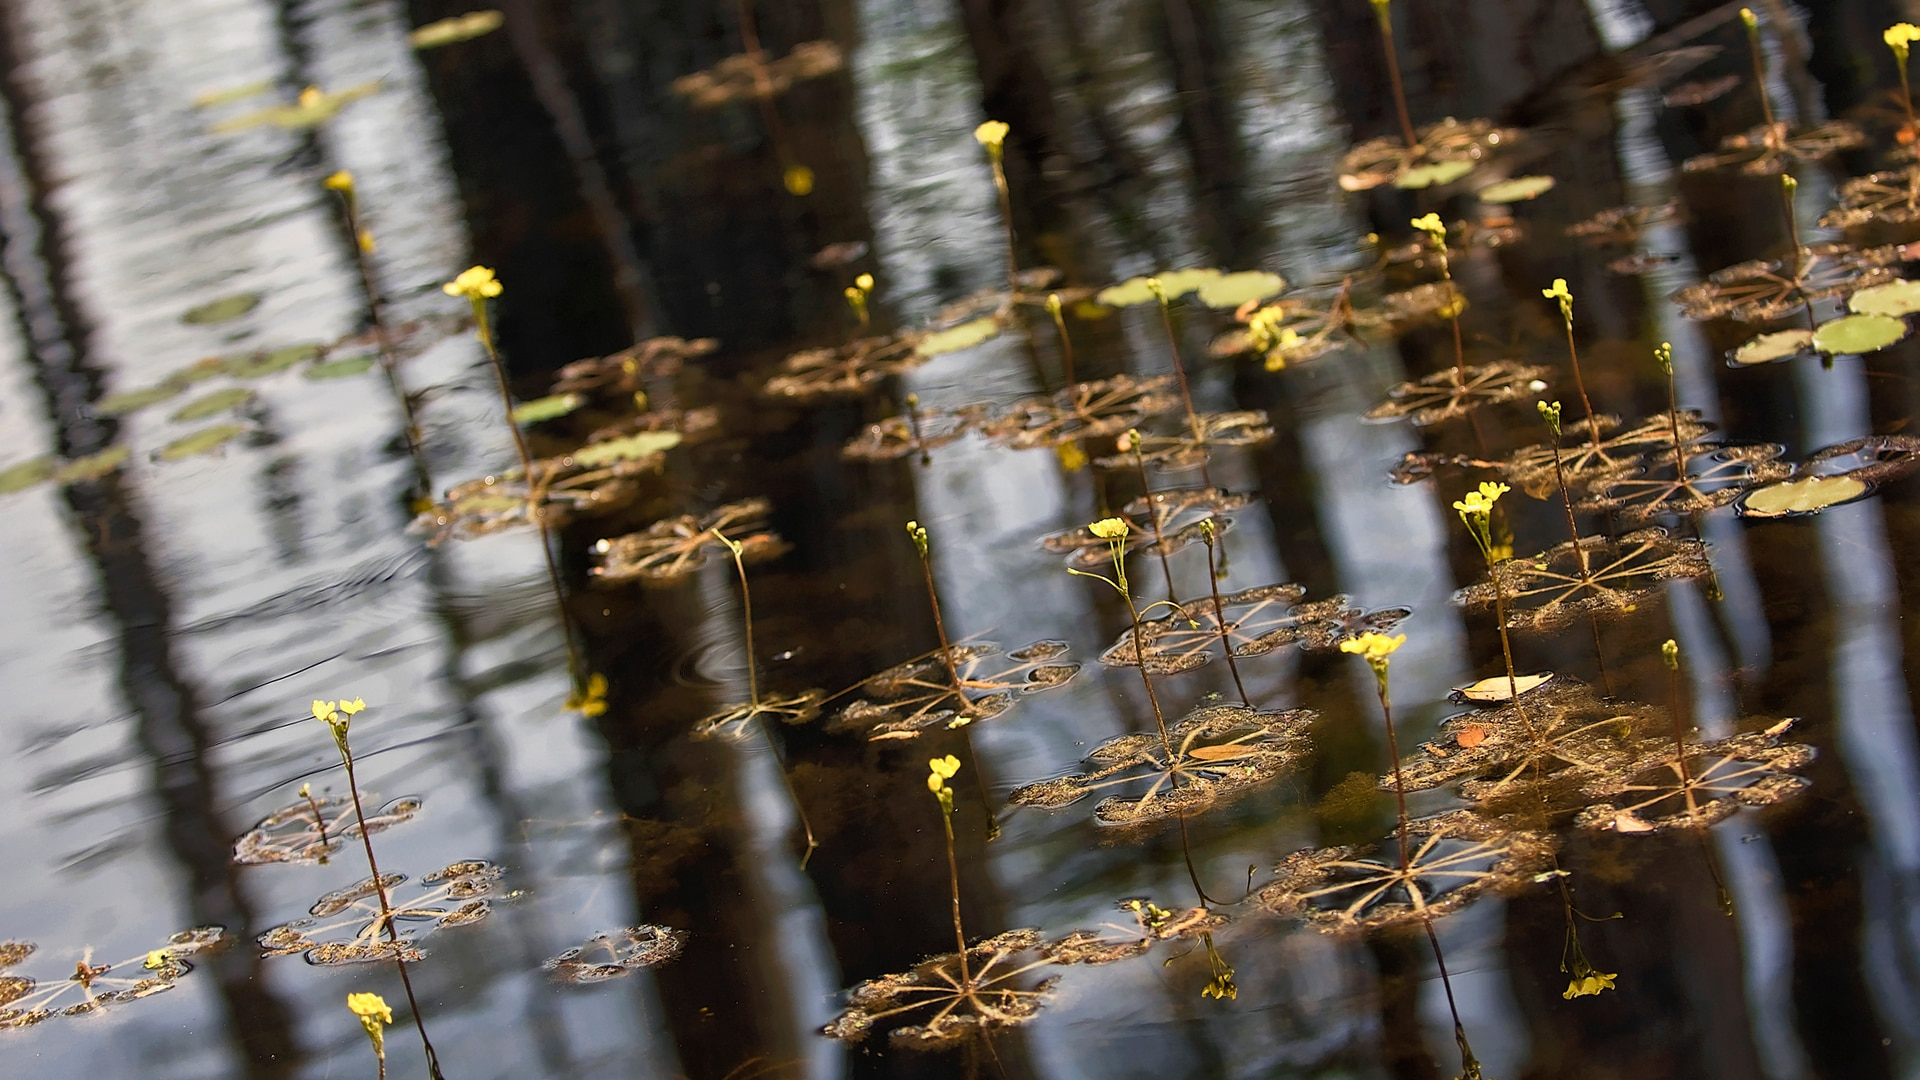 Cluster of plants with wide roots floating on pond